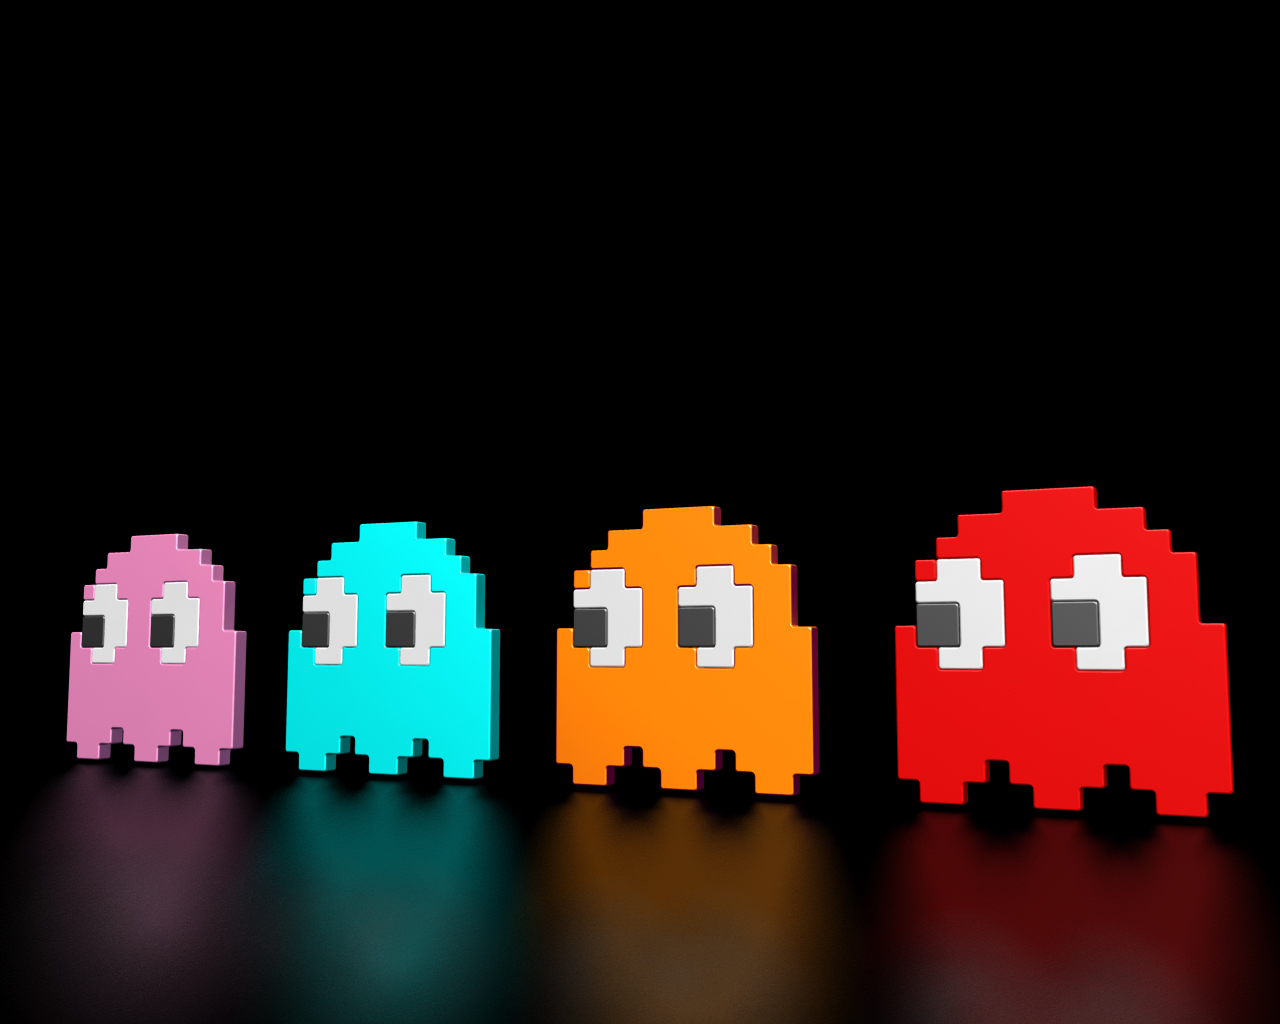 pacman reflection wallpaper background classic game arcade img image 1280x1024